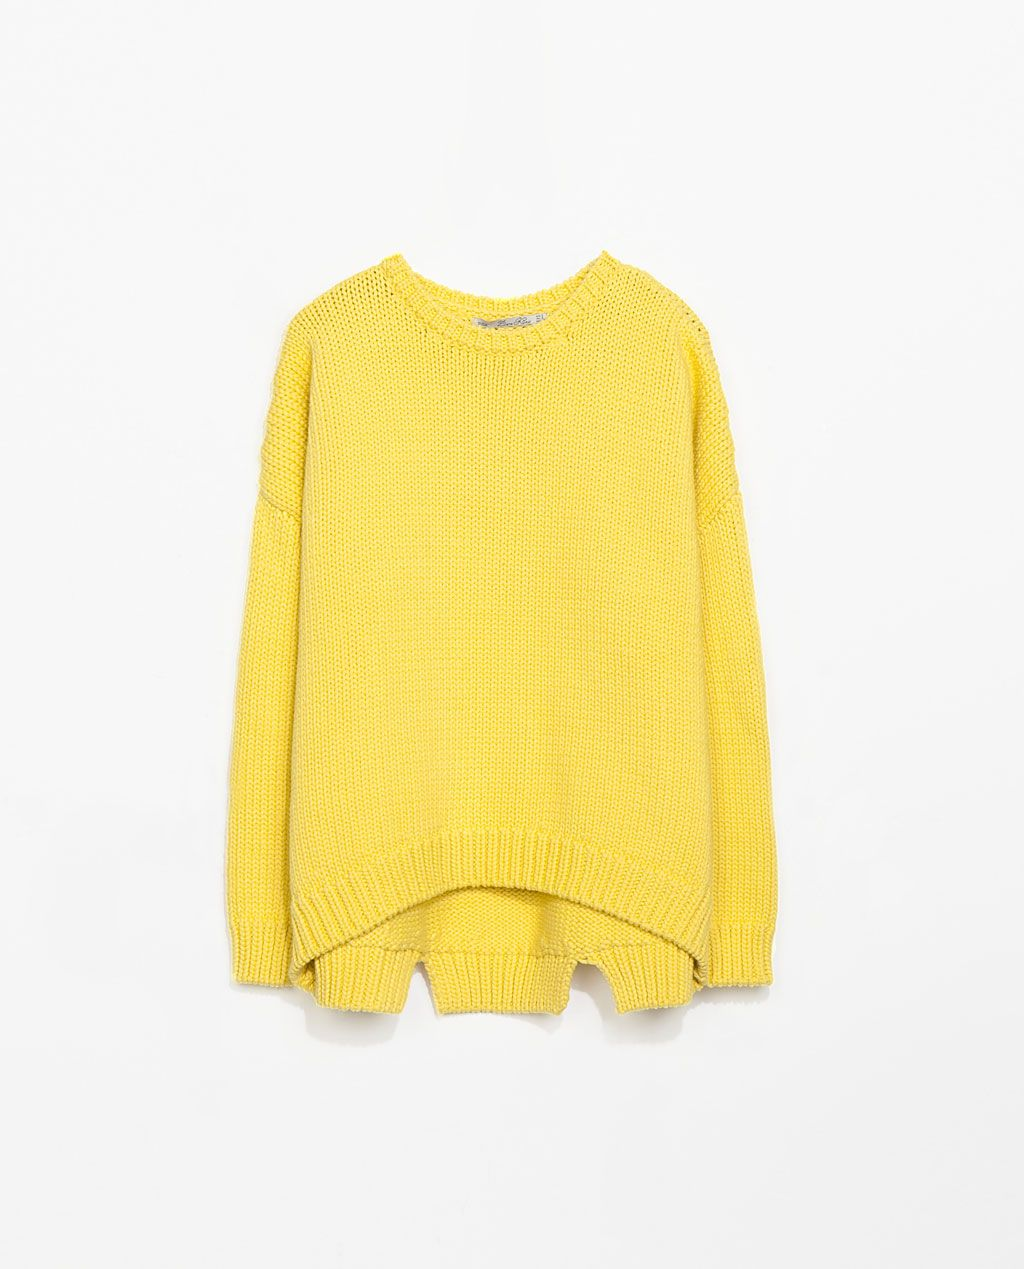 ... cable sweater by   Other Stories from one of our designs! Hermoso en  amarillo  ) ZARA - REBAJAS - JERSEY OVERSIZE 429bababa036